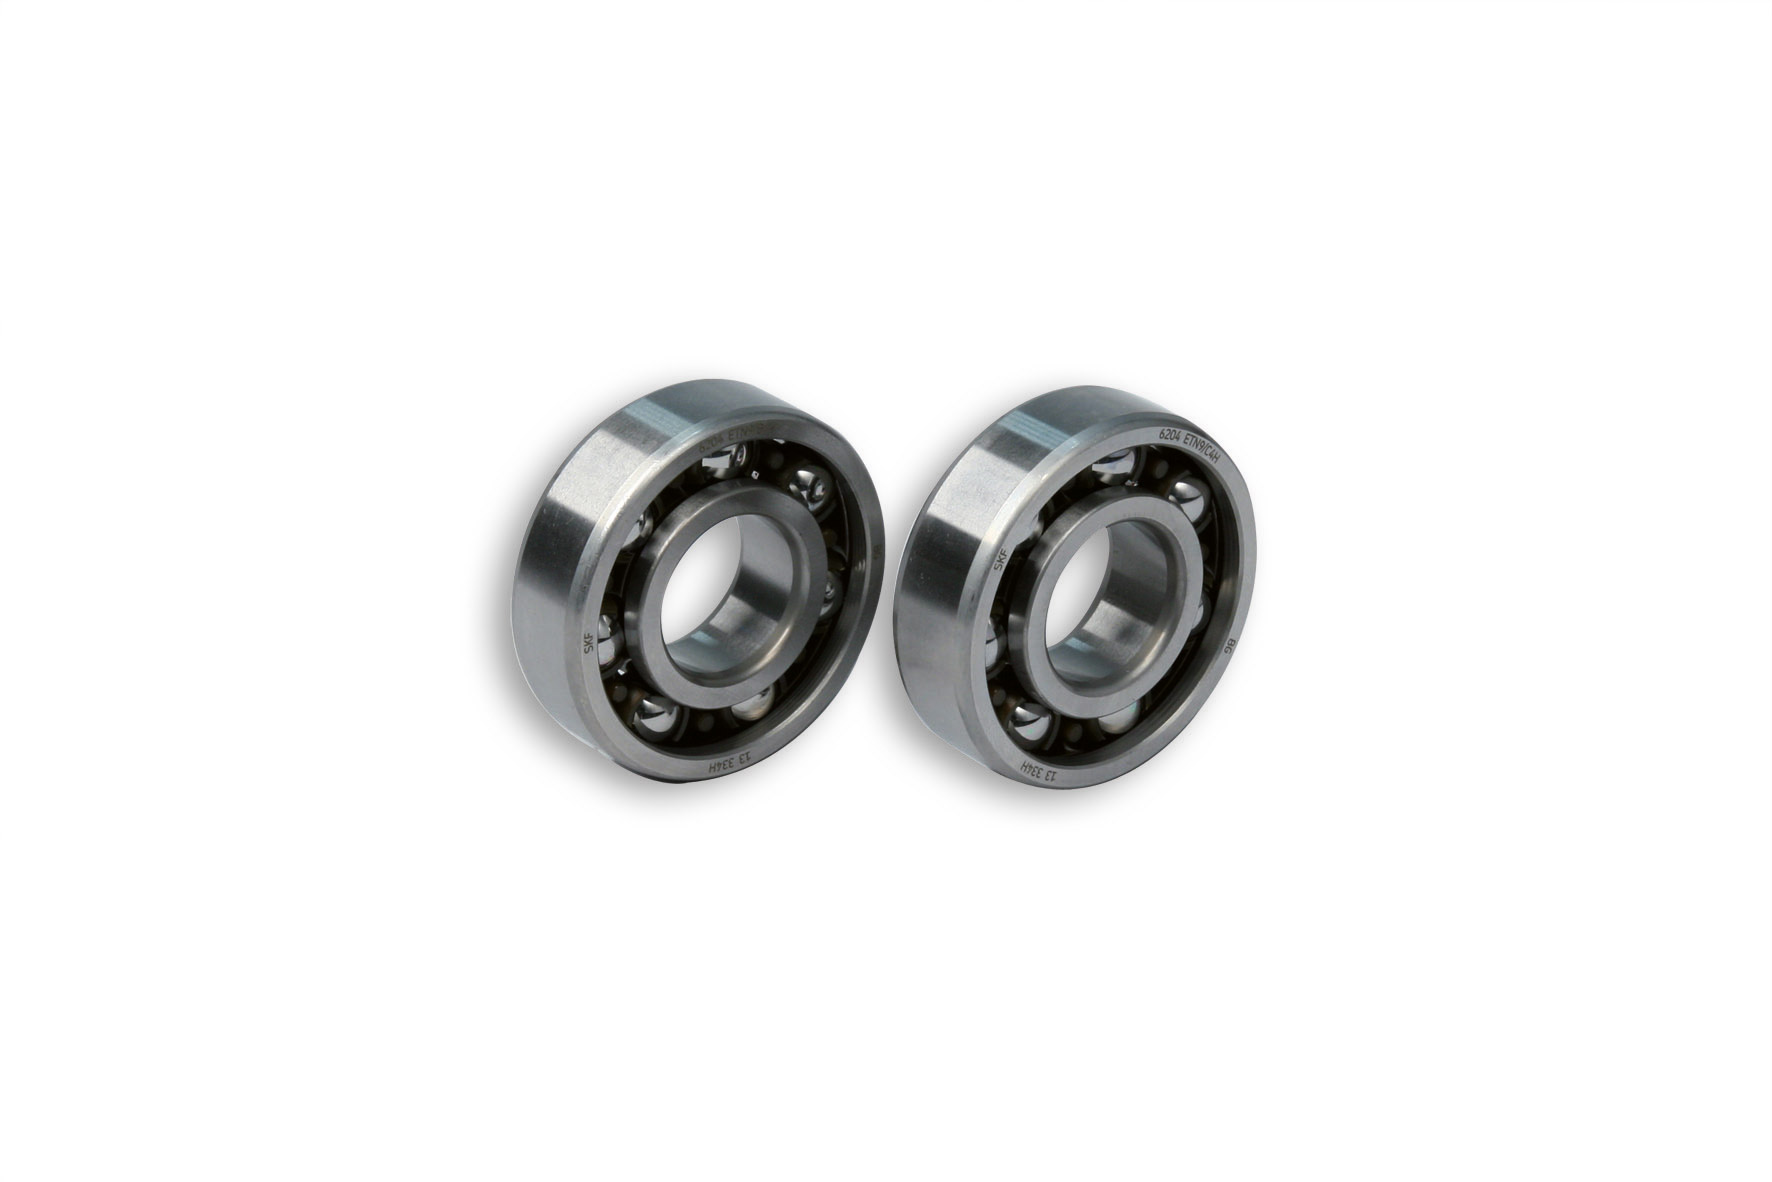 2 ROLLER BEARINGS with BALLS Ø 20x47x14 (C4H) for CRANKSH. moto DERBI-scooter MIN./YAM.50